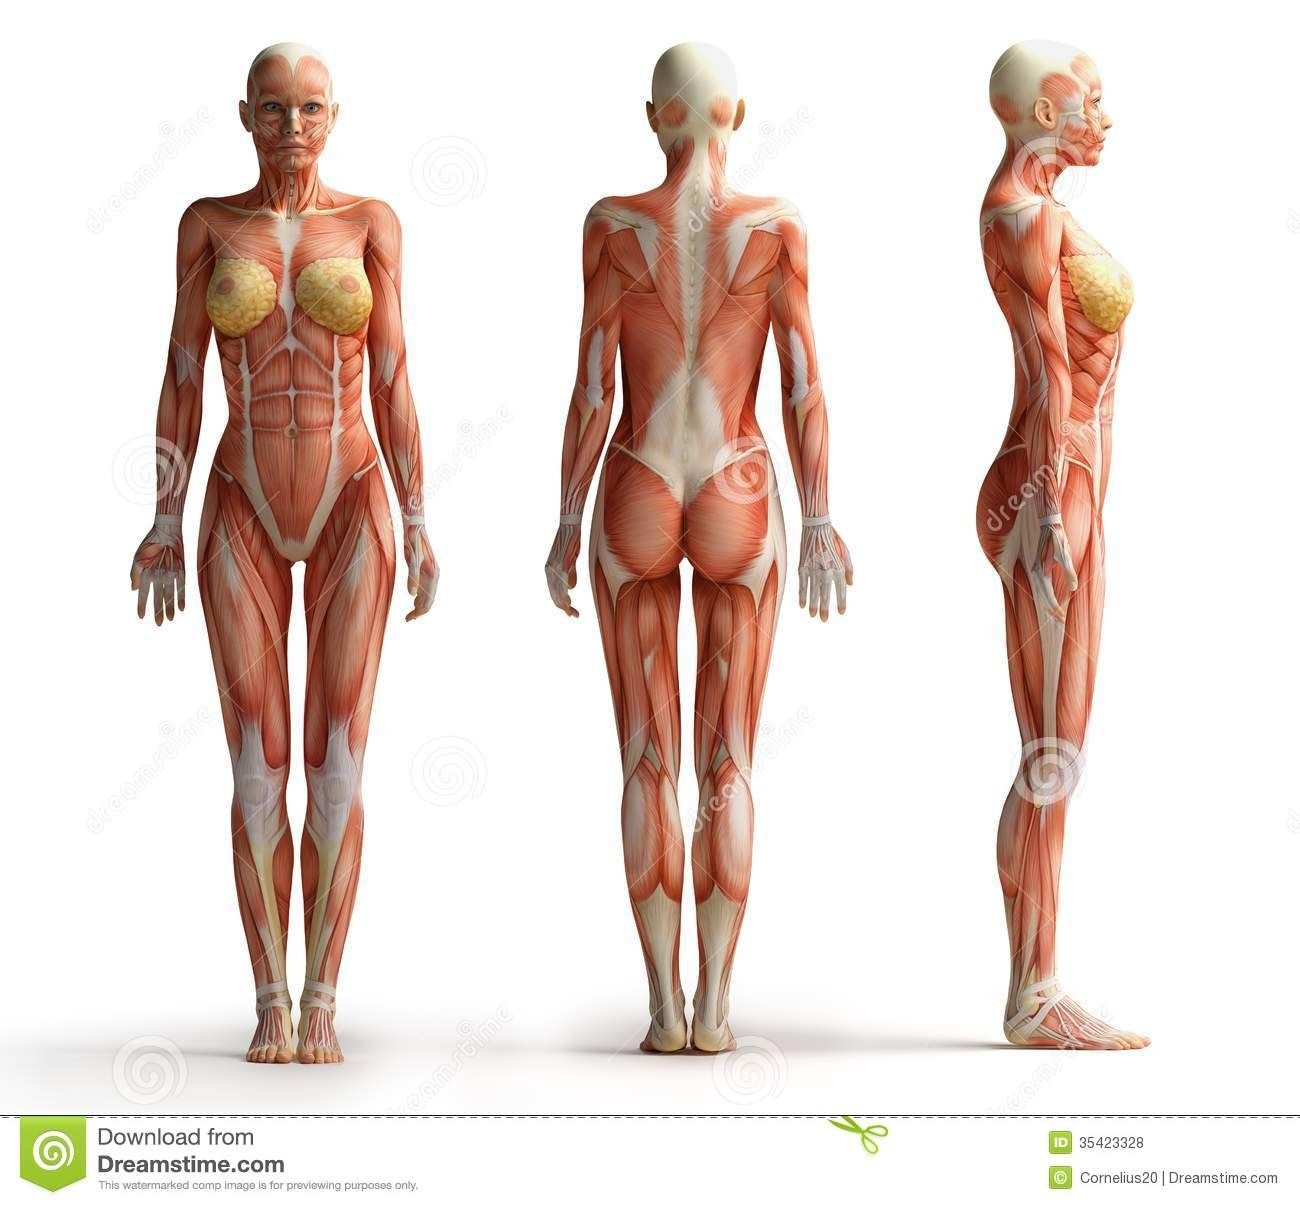 The Muscle Structure In Human Body Of Female Anatomy Of Woman Muscle ...